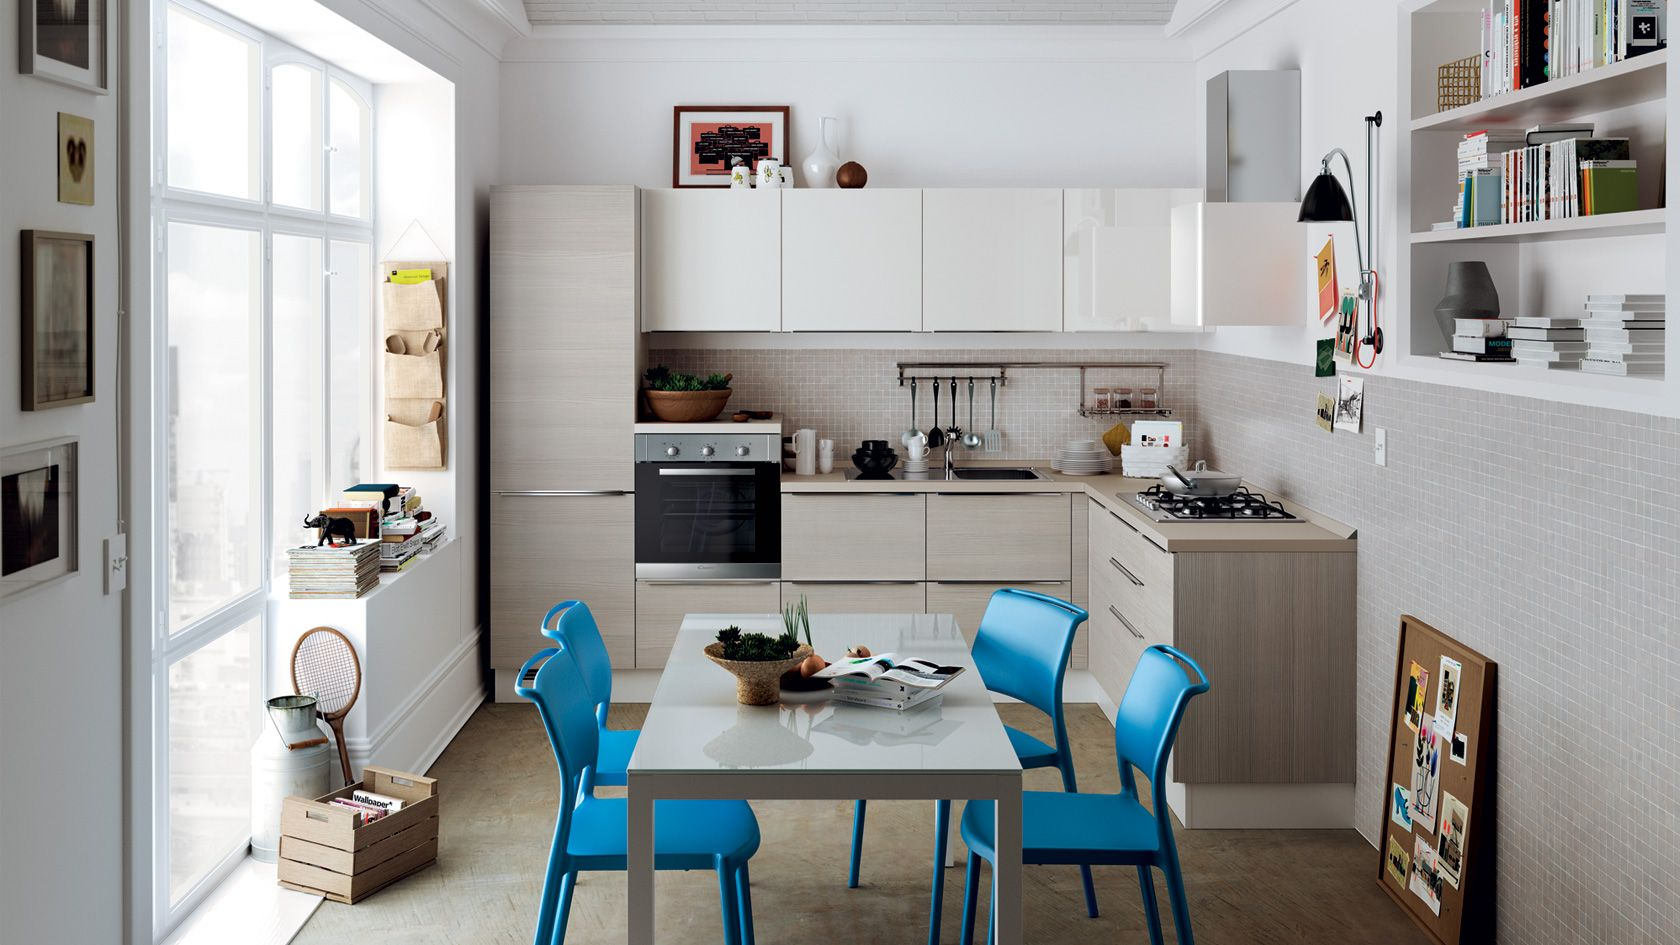 It Has A Corner Layout With All The Functions Concentrated In The Base Units A Series Of Four Wall Cucina Urbana Progetti Di Cucine Cucine Piccole